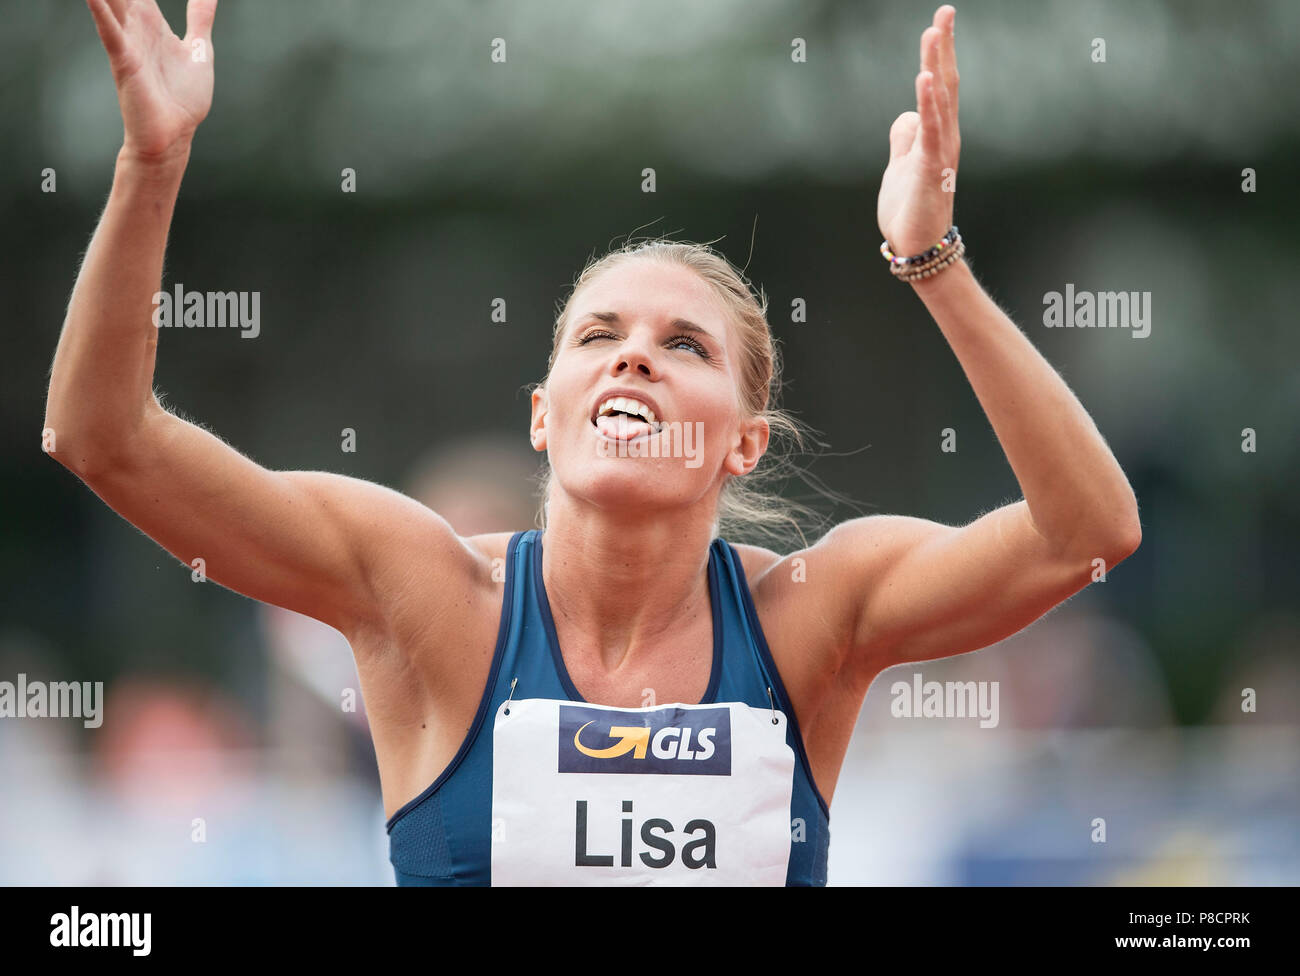 T-online.e Lisa Linnell Sew Gesture Gesture High Jump Athletics